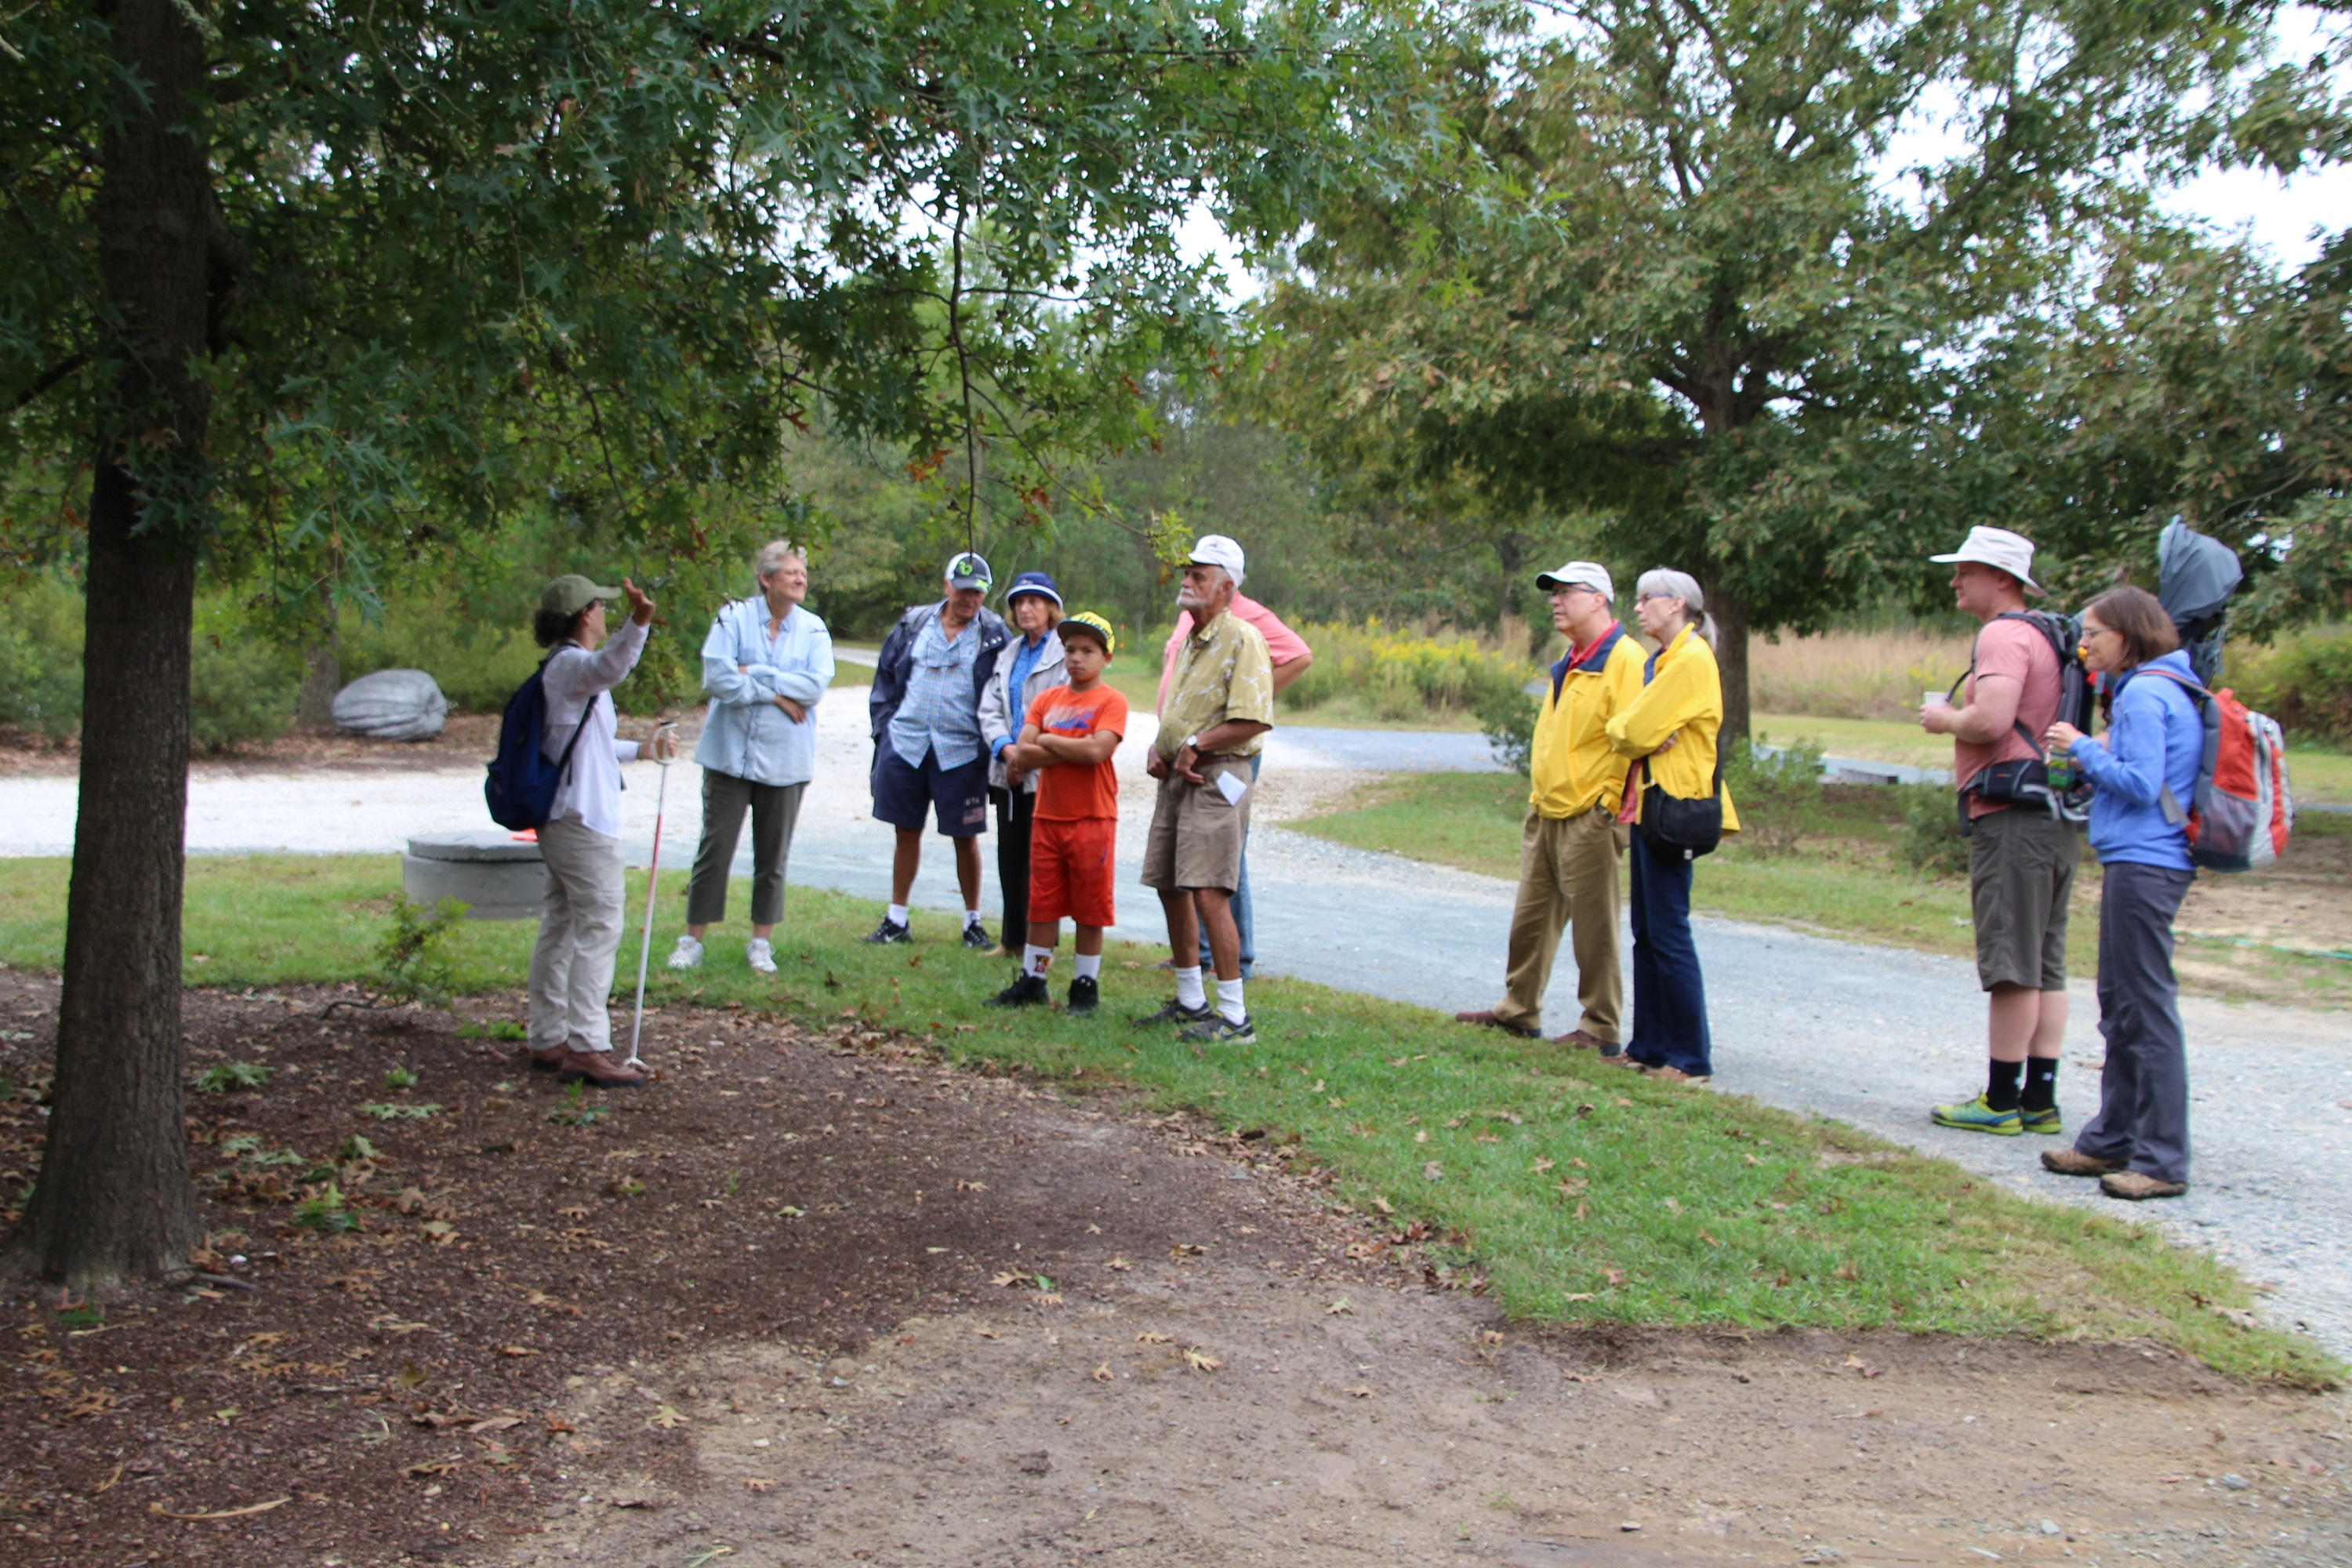 Adkins Arboretum Announces 2019 Soup 'n Walk Program Schedule